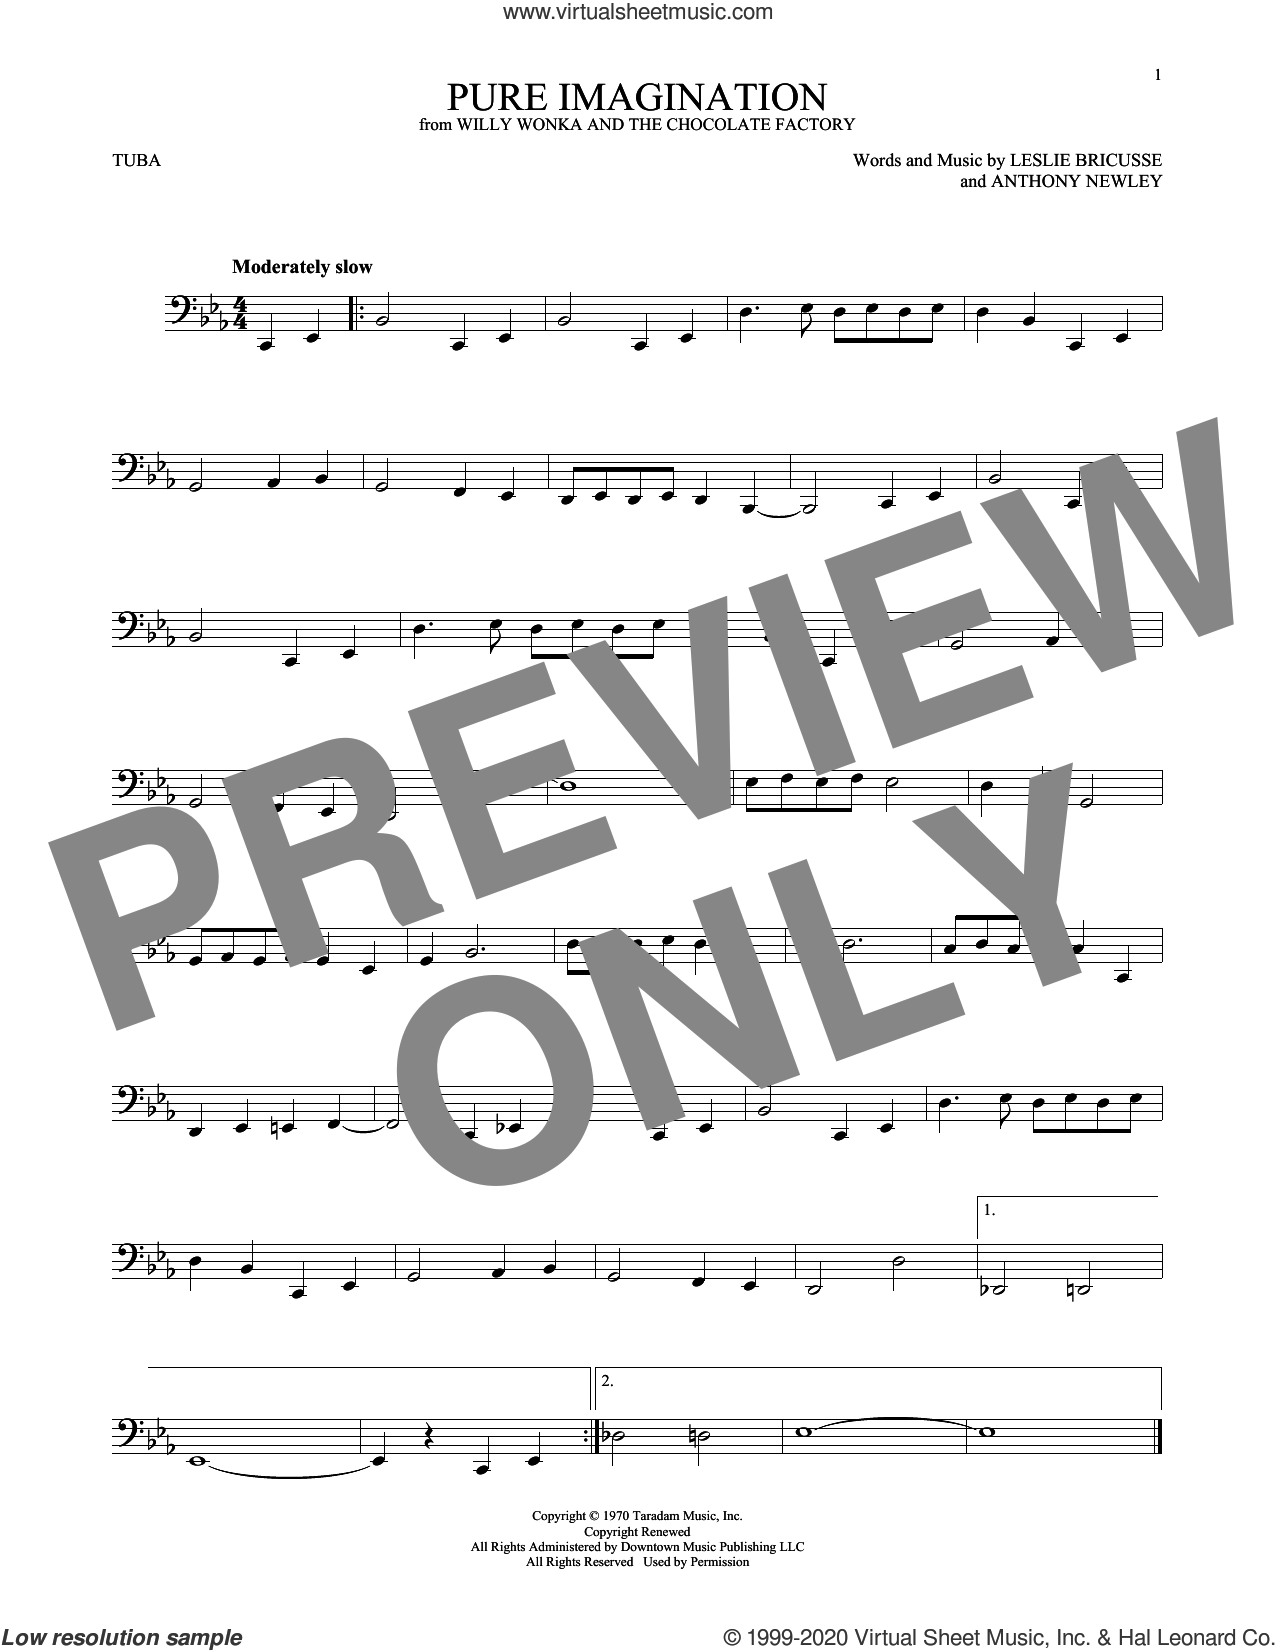 Pure Imagination (from Willy Wonka and The Chocolate Factory) sheet music for Tuba Solo (tuba) by Leslie Bricusse and Anthony Newley, intermediate skill level